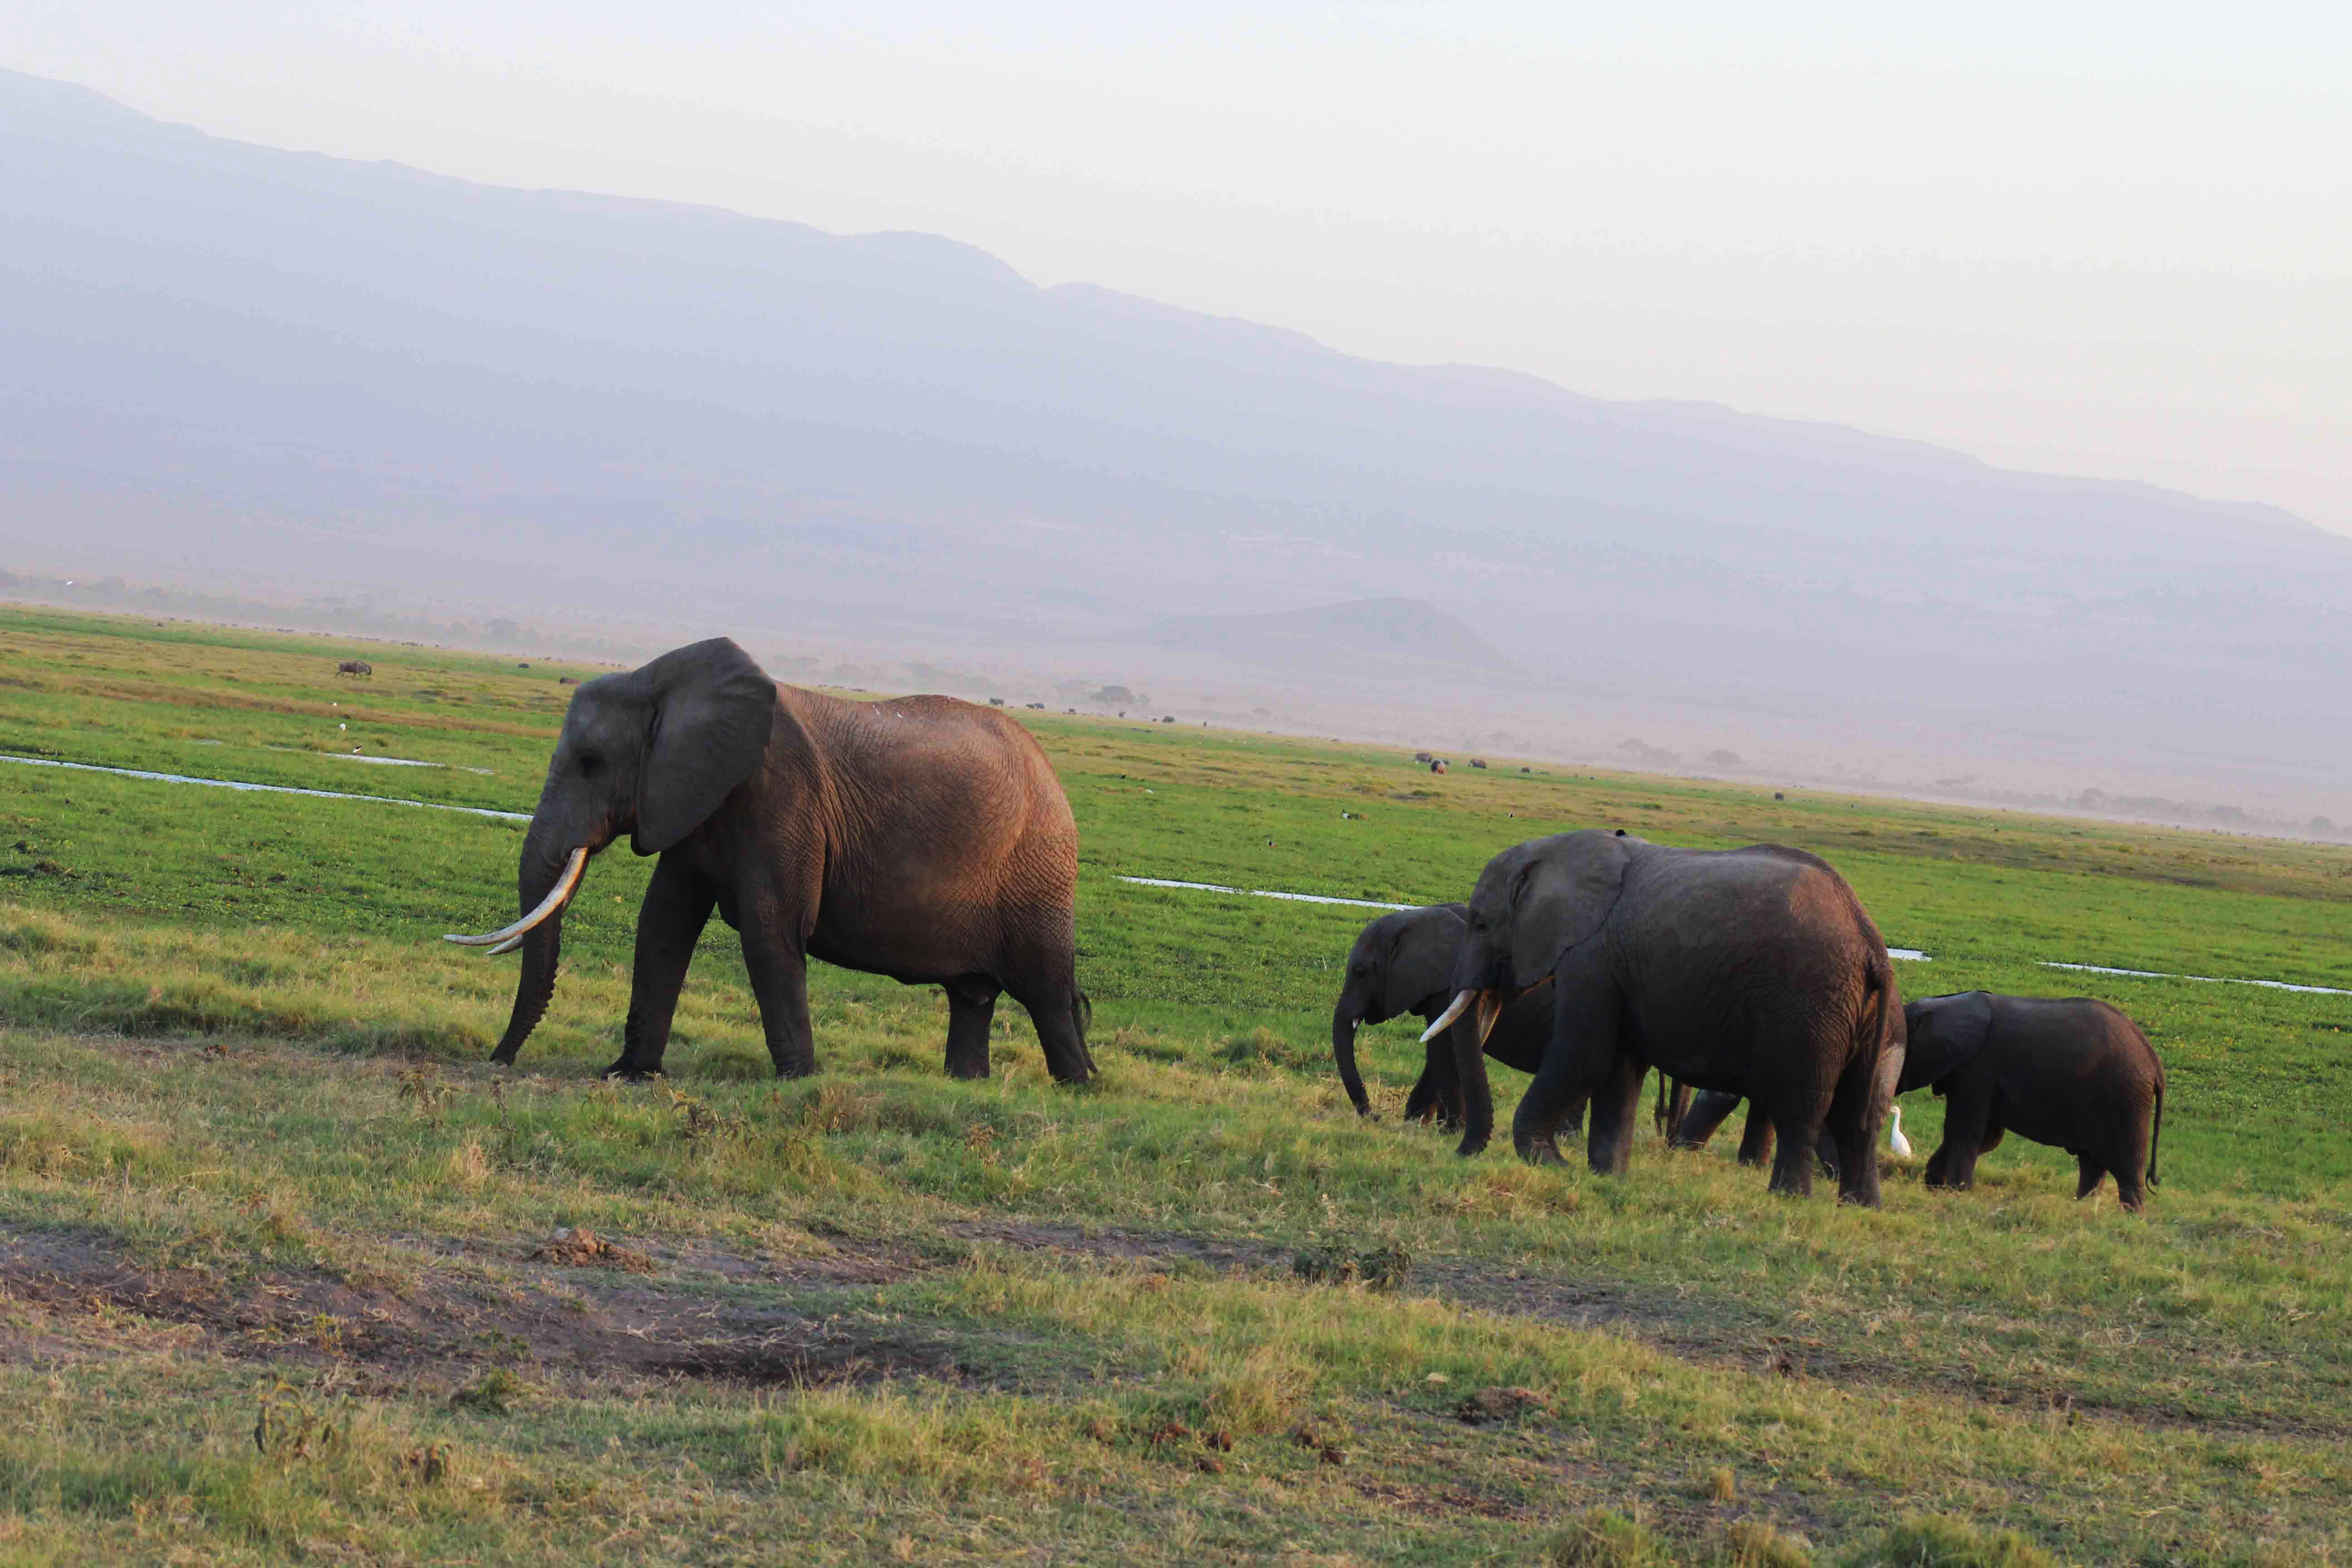 Elephants are abundant and the gentle giants are impressive!